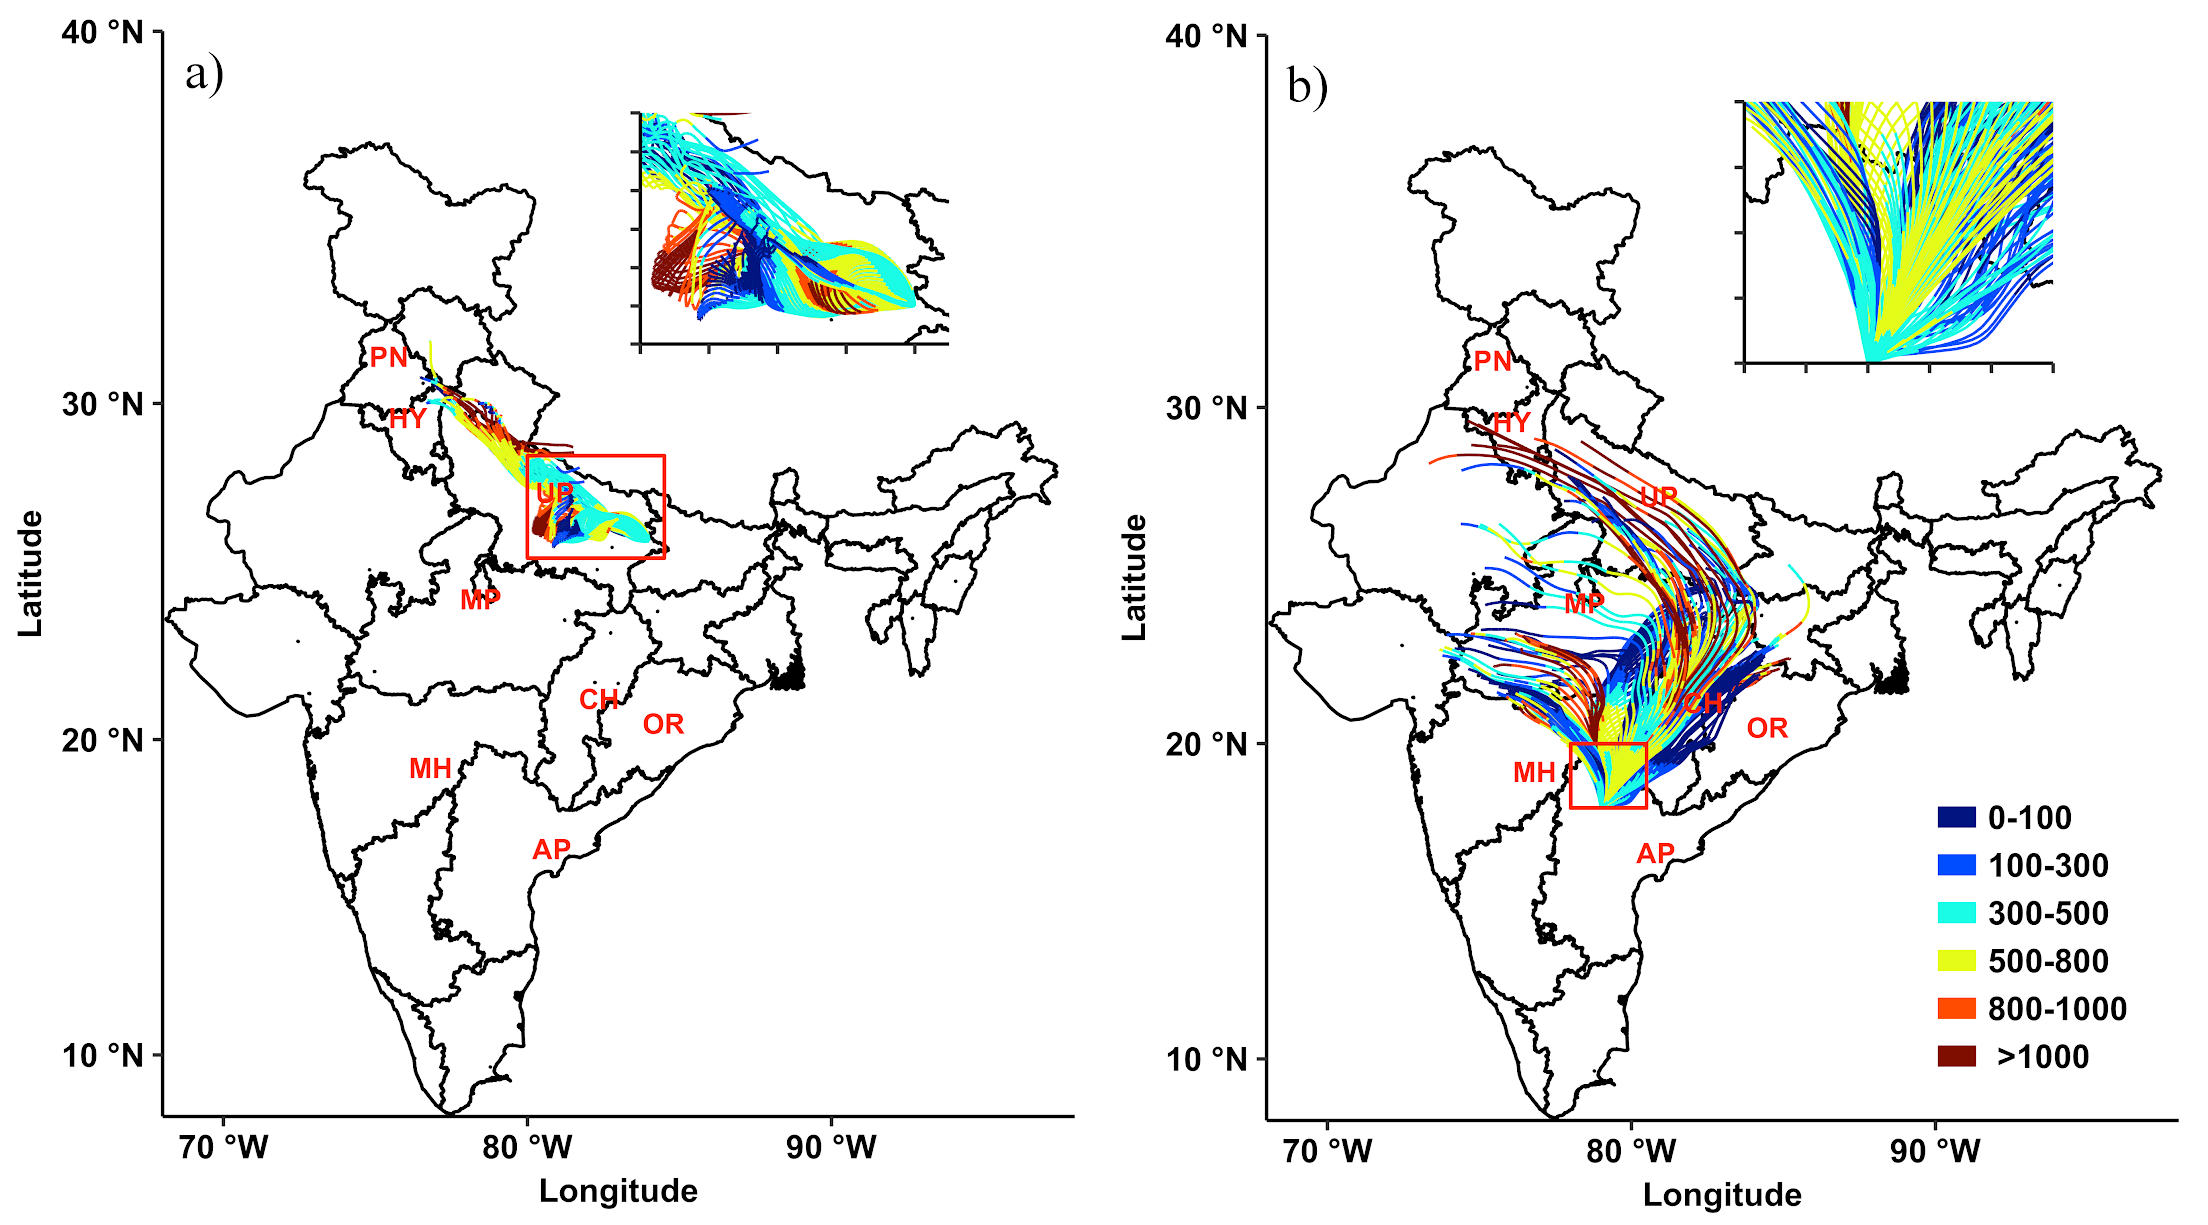 Wind back trajectories showing the wind patterns for (a) the eastern parts of the Indo-Gangetic Plains and (b) central-south India. The two-letter state abbreviations, stated in red, stand for PN – Punjab, HY – Haryana, UP – Uttar Pradesh, MP – Madhya Pradesh, MH – Maharashtra, AP – Andhra Pradesh, CH – Chattisgarh, OR – Odisha. Figure 4 of Sarkar, Singh, & Chauhan 2018